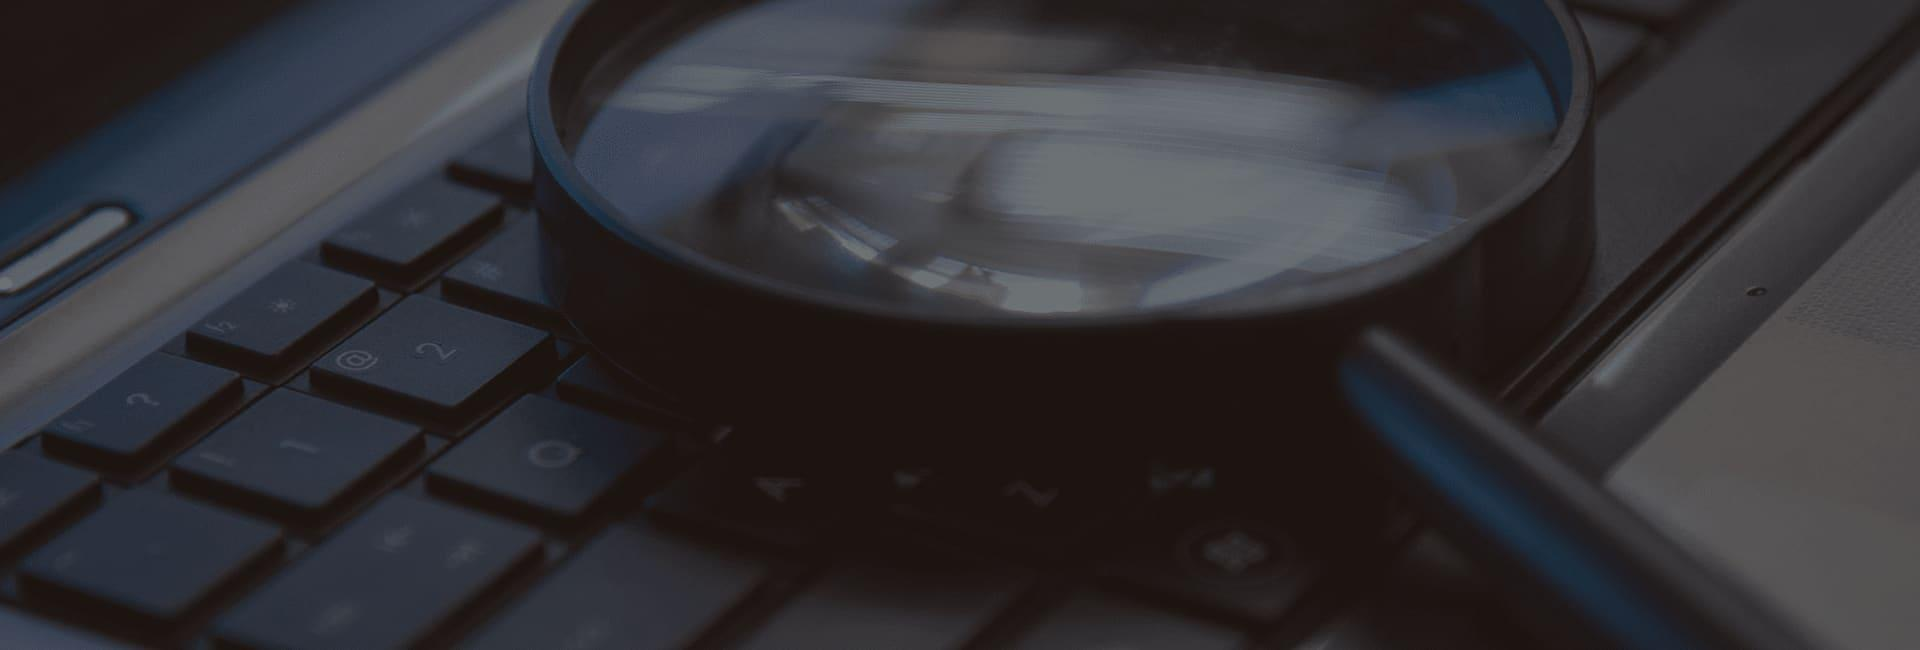 a magnifying glass laying on top of a keyboard